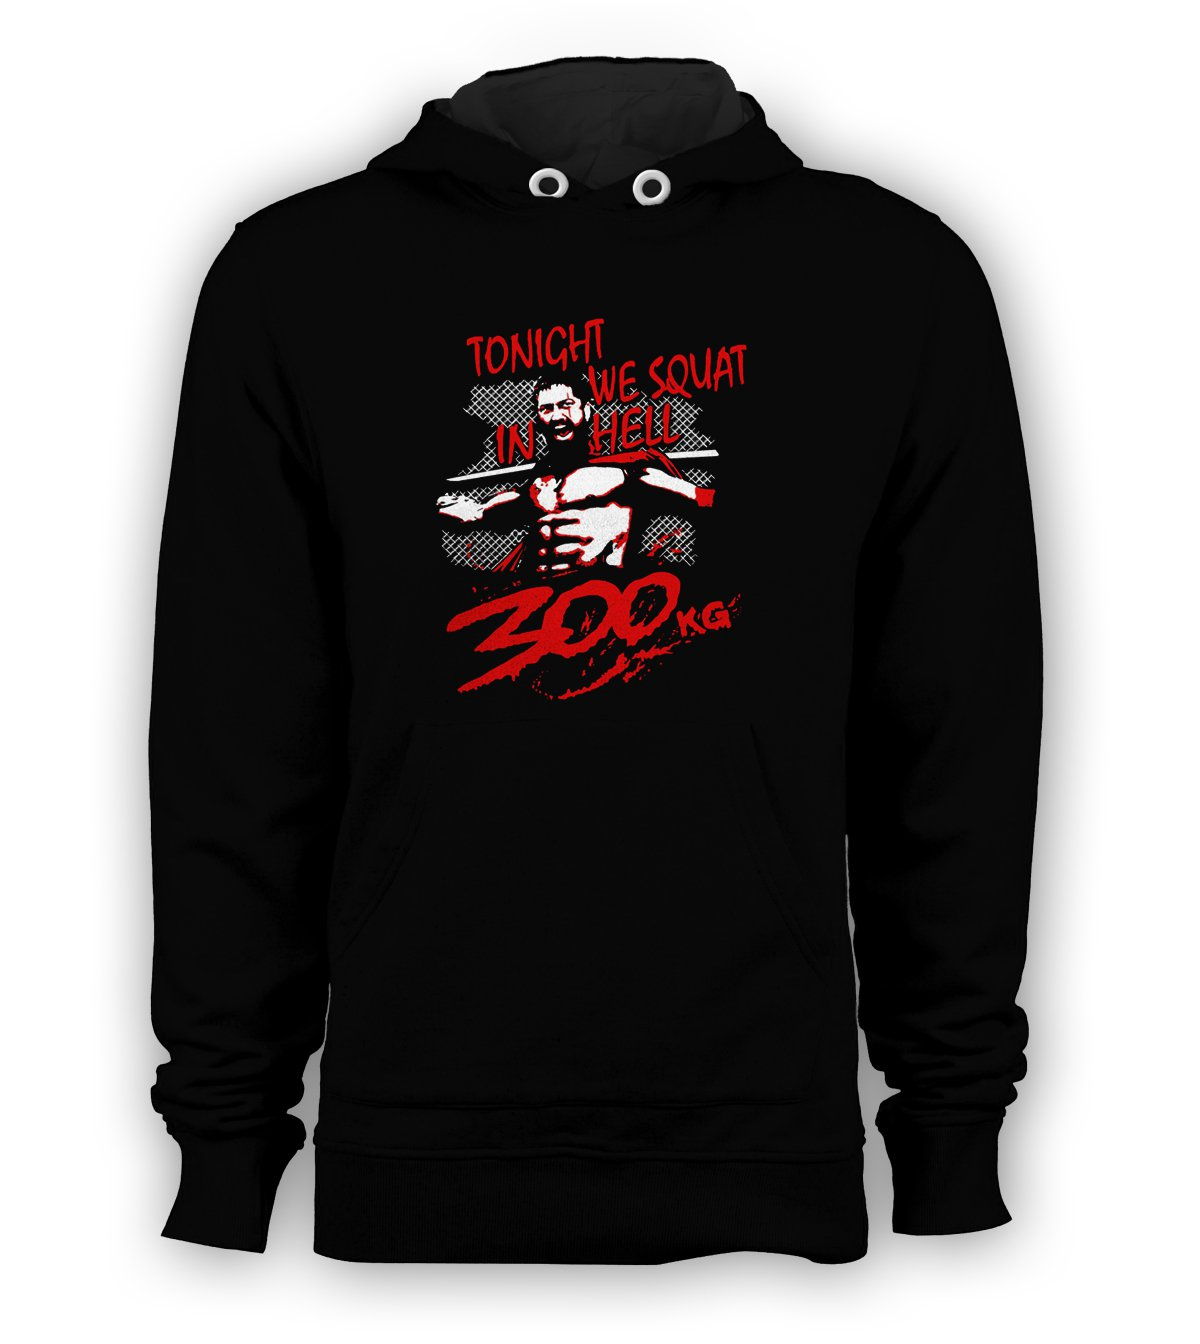 GYM TRAINING TONIGHT WE SQUAT IN HELL Pullover Hoodie Men Sweatshirts Size S to 3XL New Black